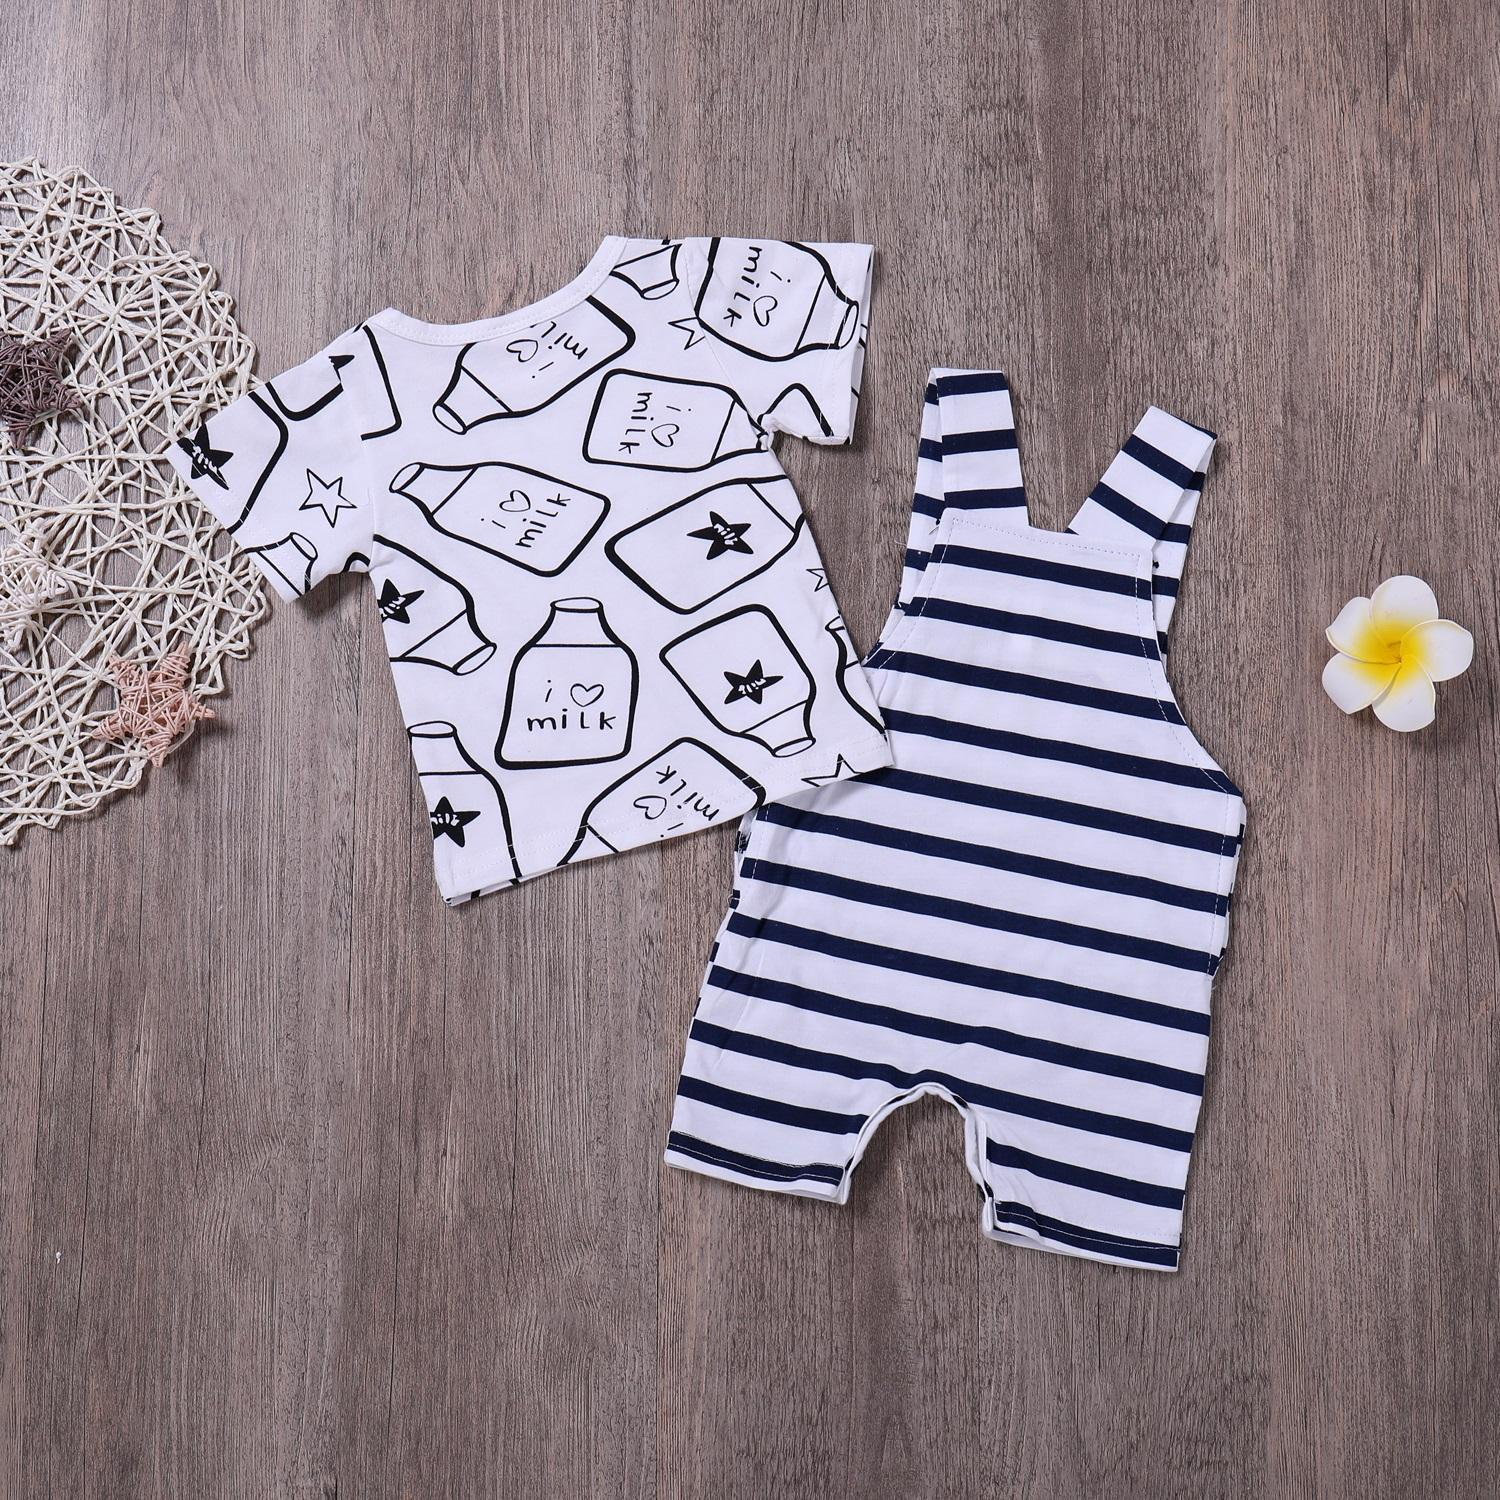 1 set Infant Clothing Boys Baby T-shirt and Dungaree Shorts Newborn Formal Clothes for 3-24 Months Boy Babies Free Shipping